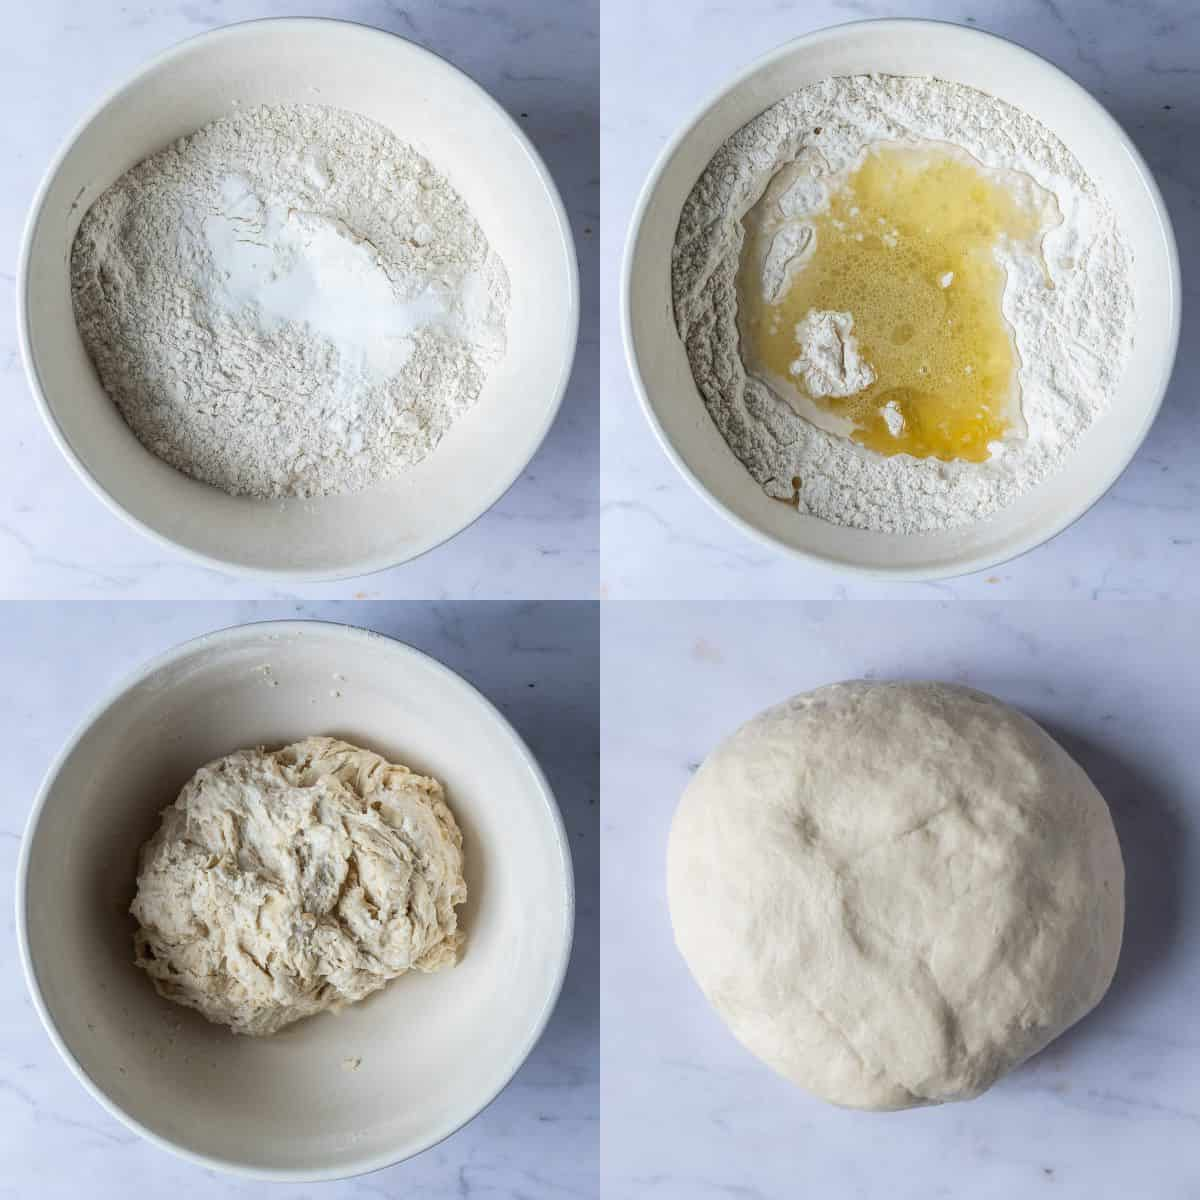 step 1 - making the dough